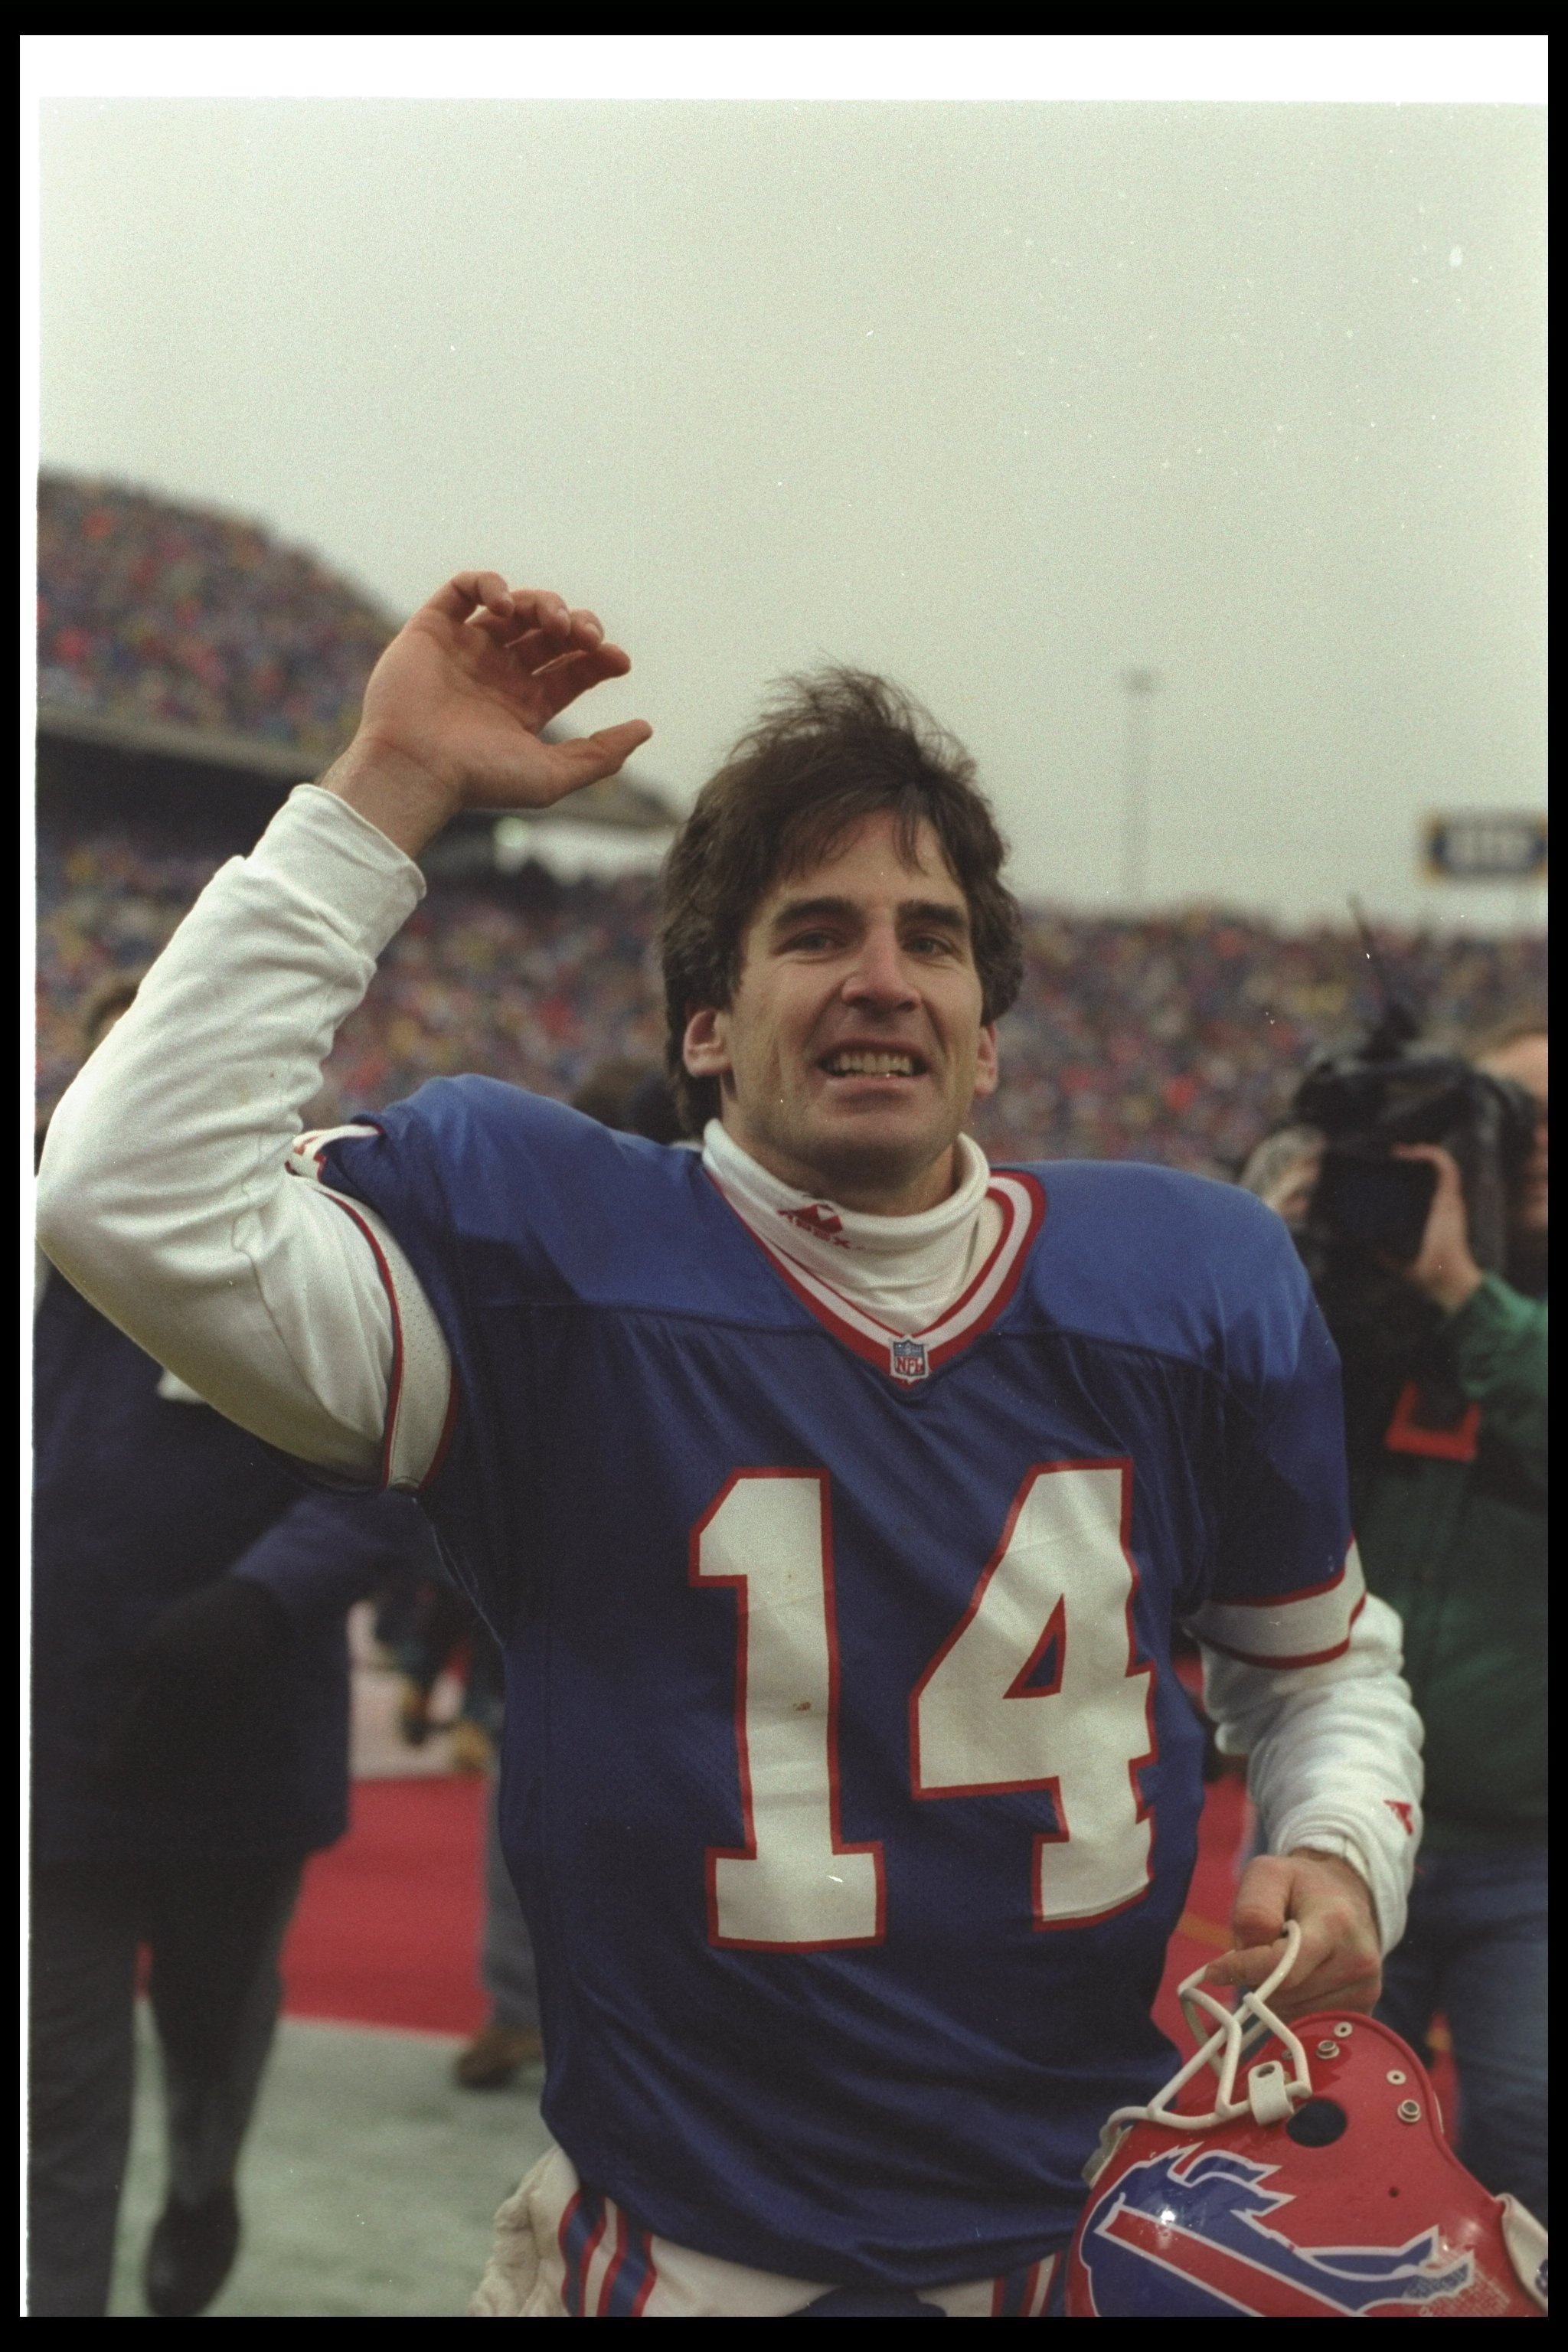 3 Jan 1993: Quarterback Frank Reich of the Buffalo Bills celebrates after a playoff game against the Houston Oilers at Rich Stadium in Orchard Park, New York. The Bills won the game in overtime, 41-38.